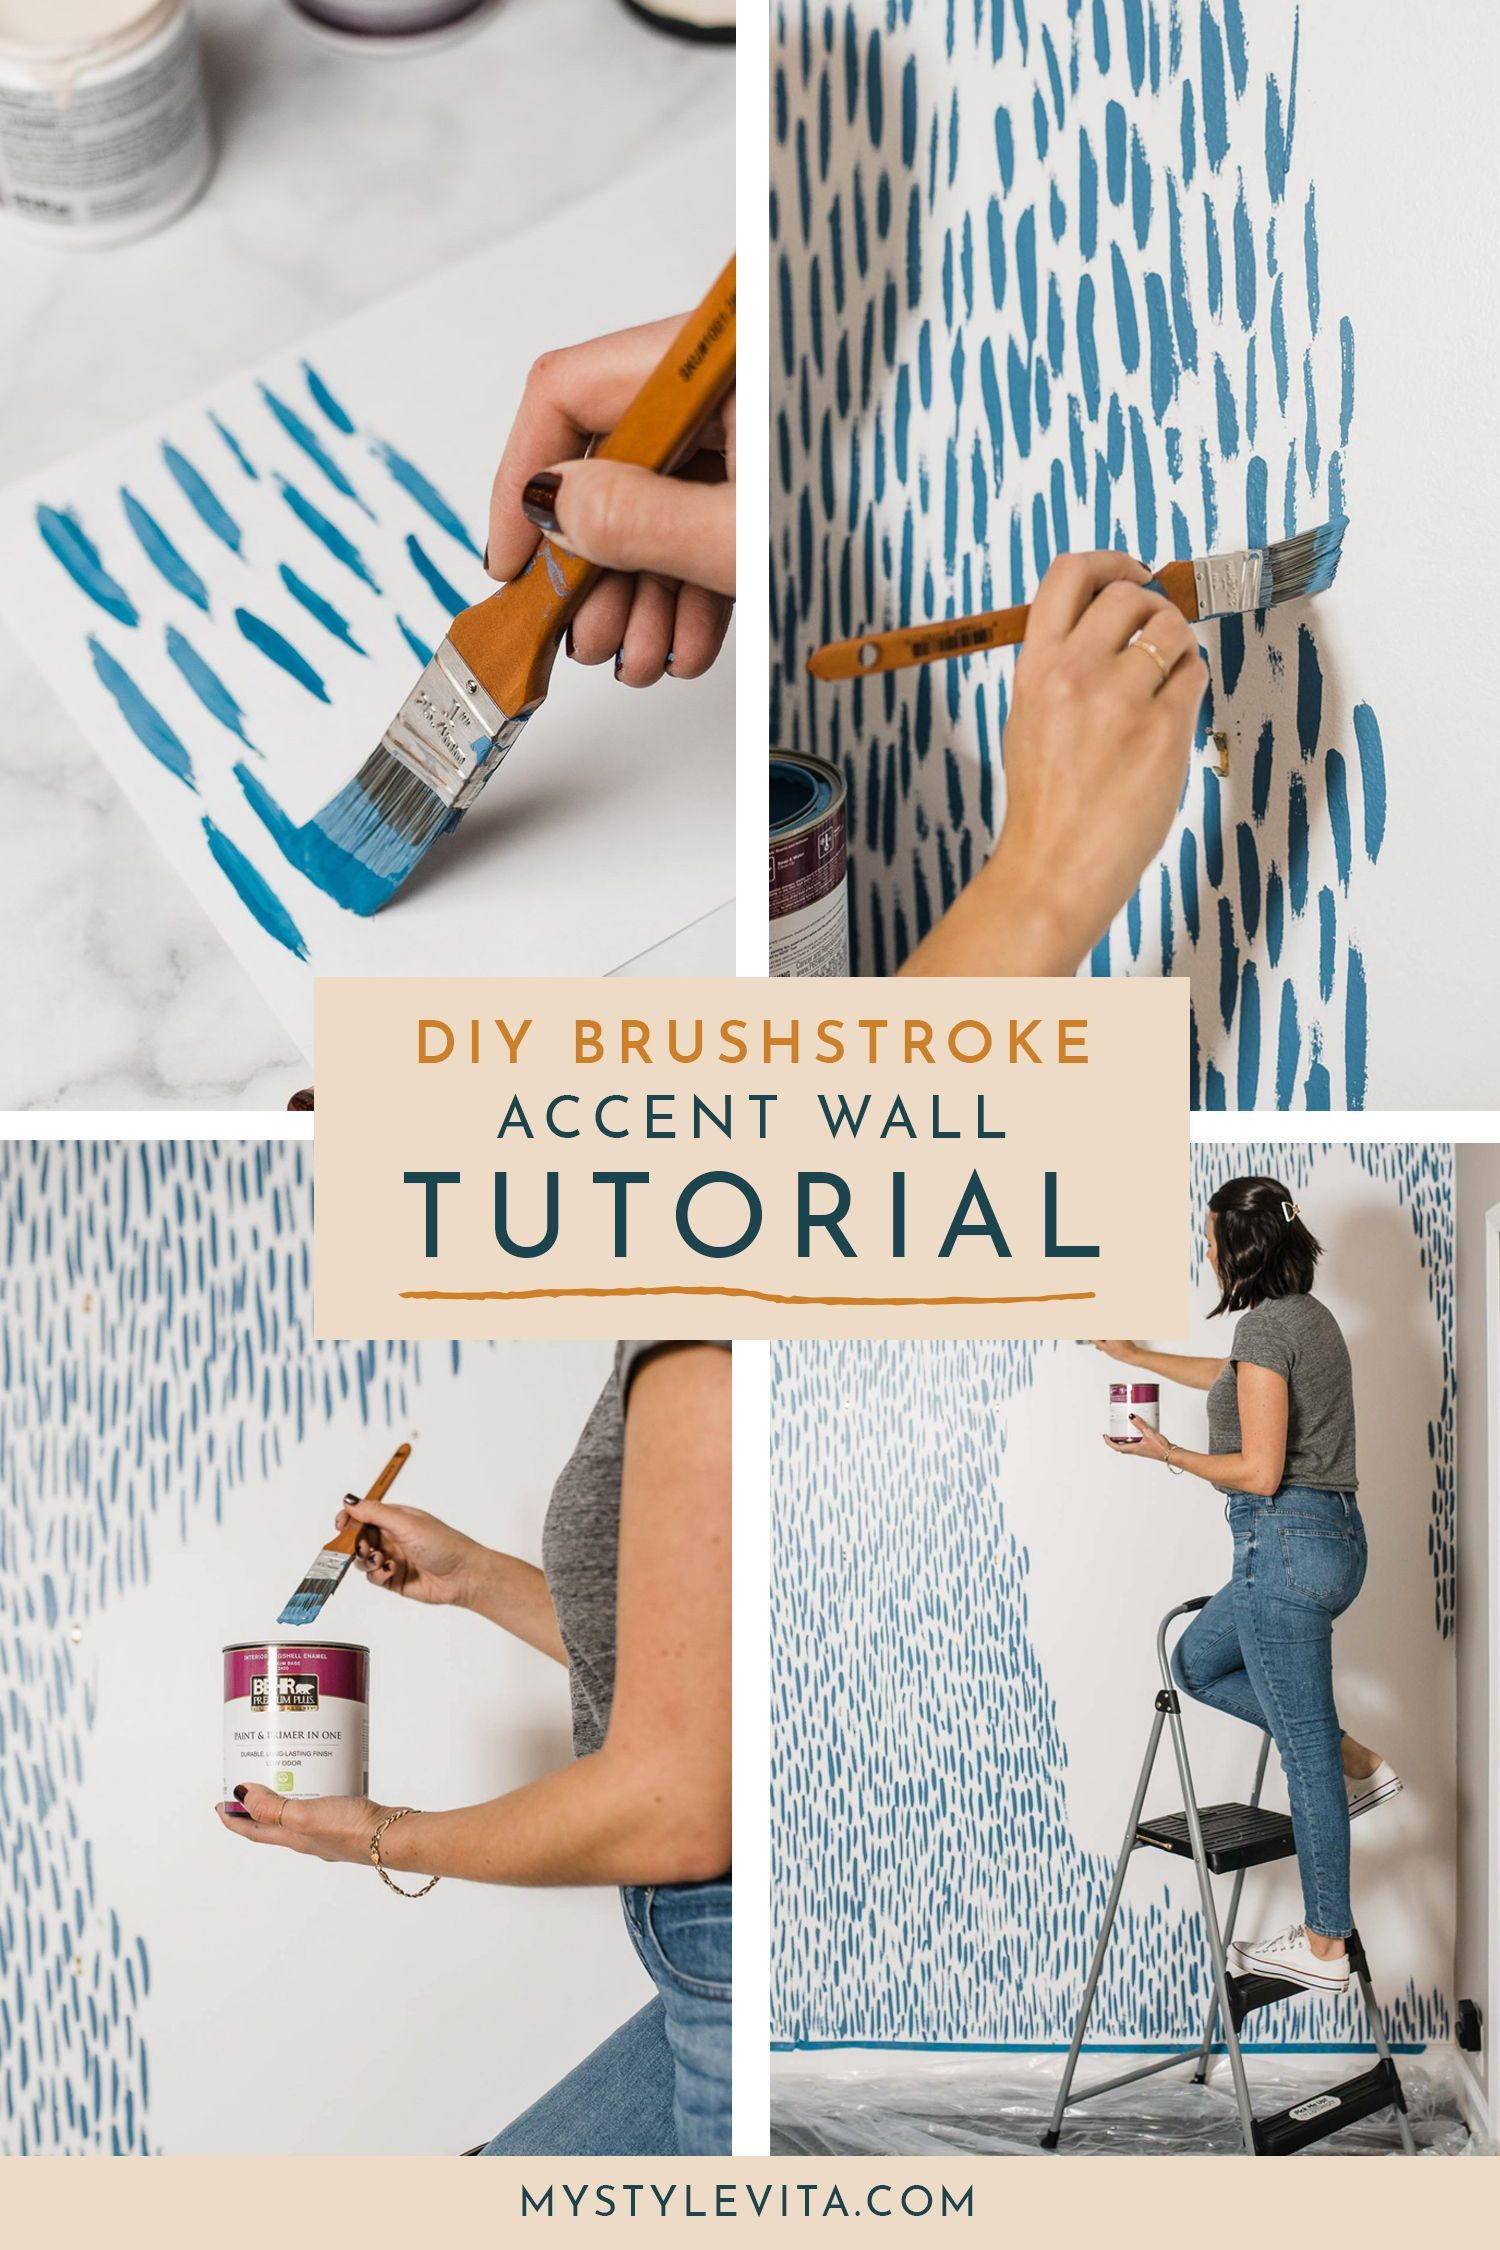 Photo of DIY Brushstroke Accent Wall Tutorial#accent #brushstroke #diy #tutorial #wall